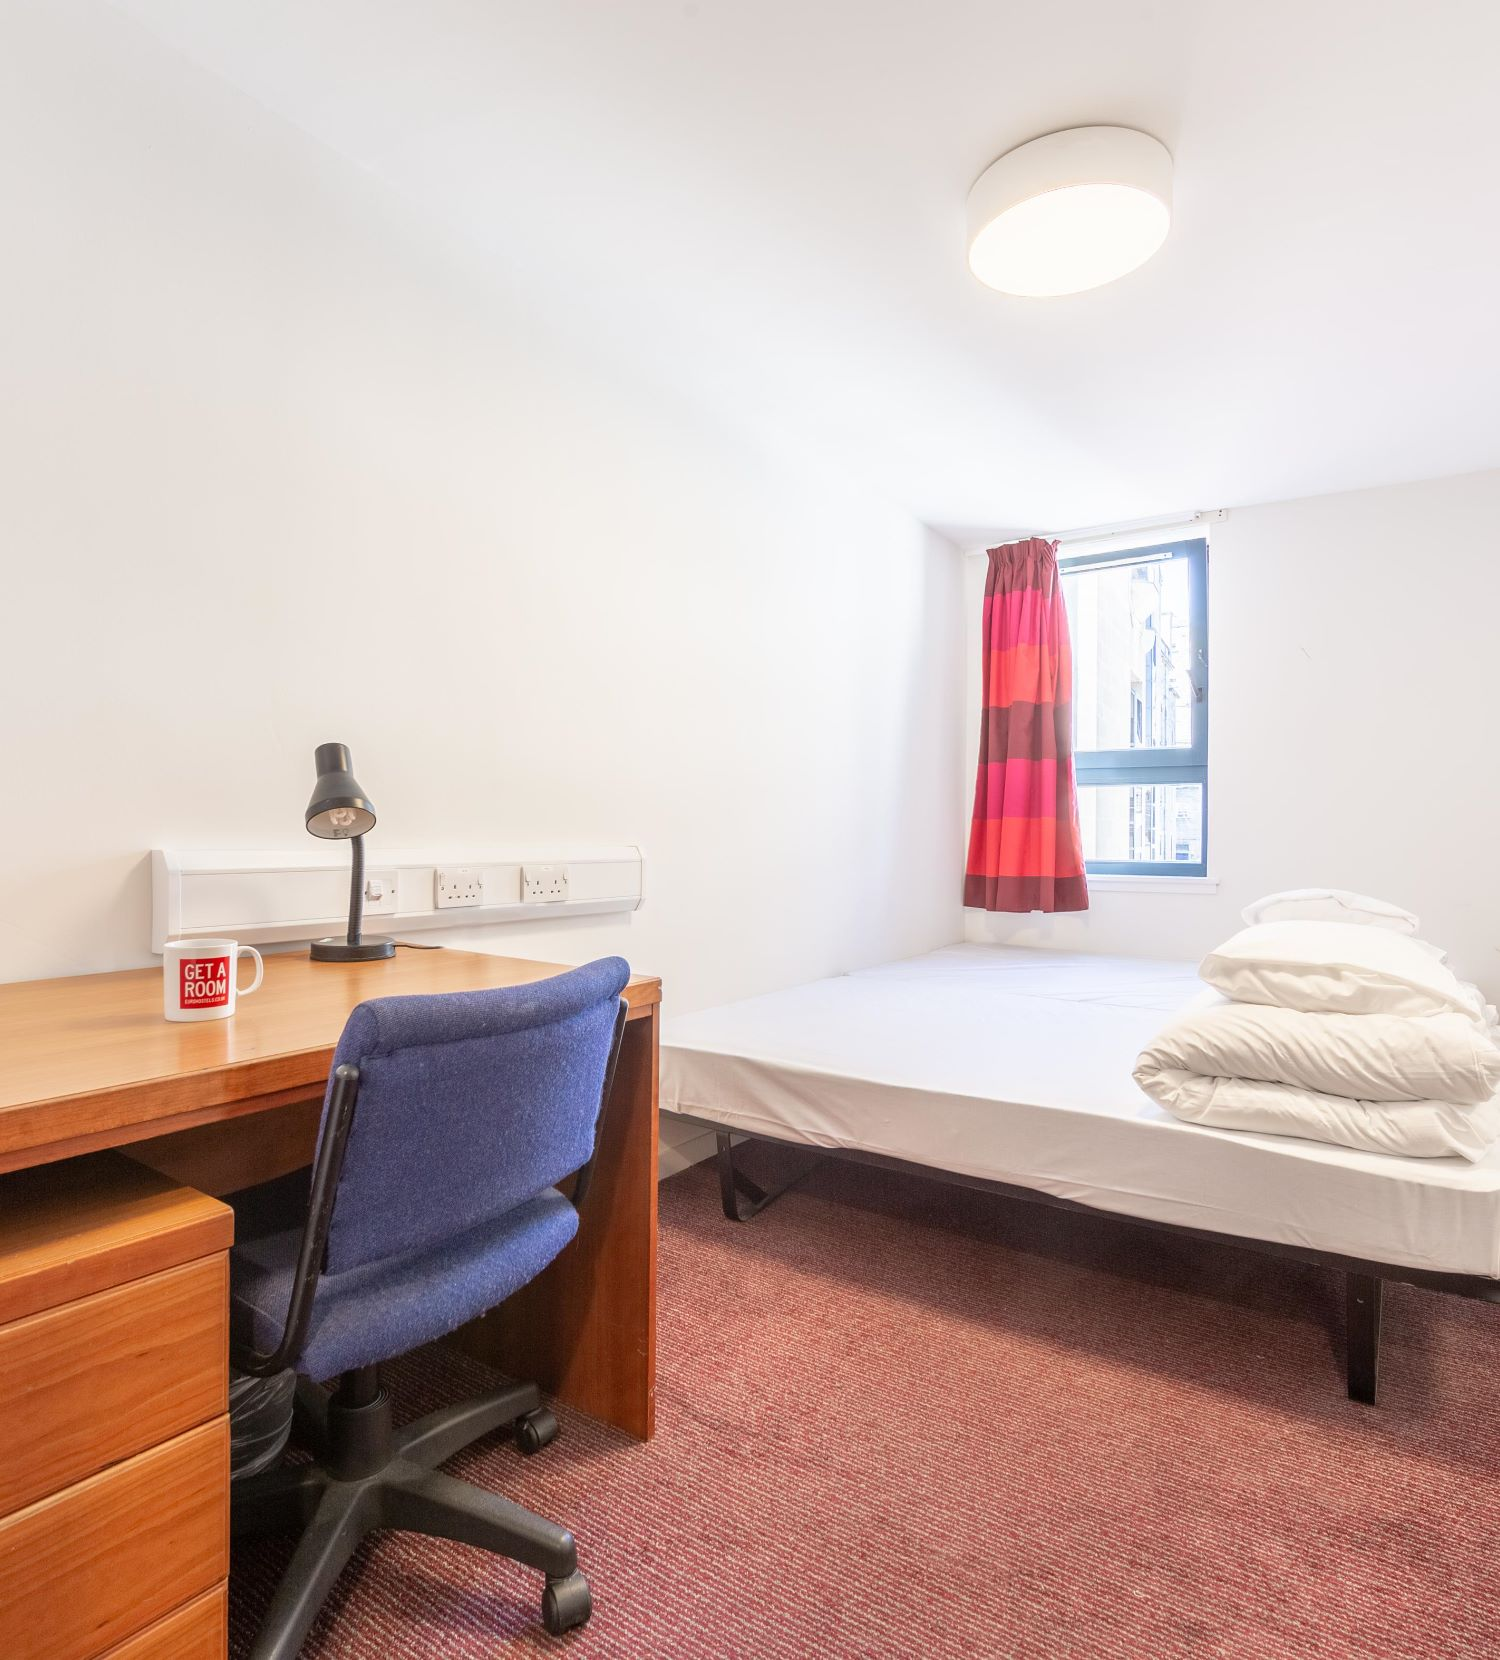 Shared Apartments at Euro Hostel Edinburgh